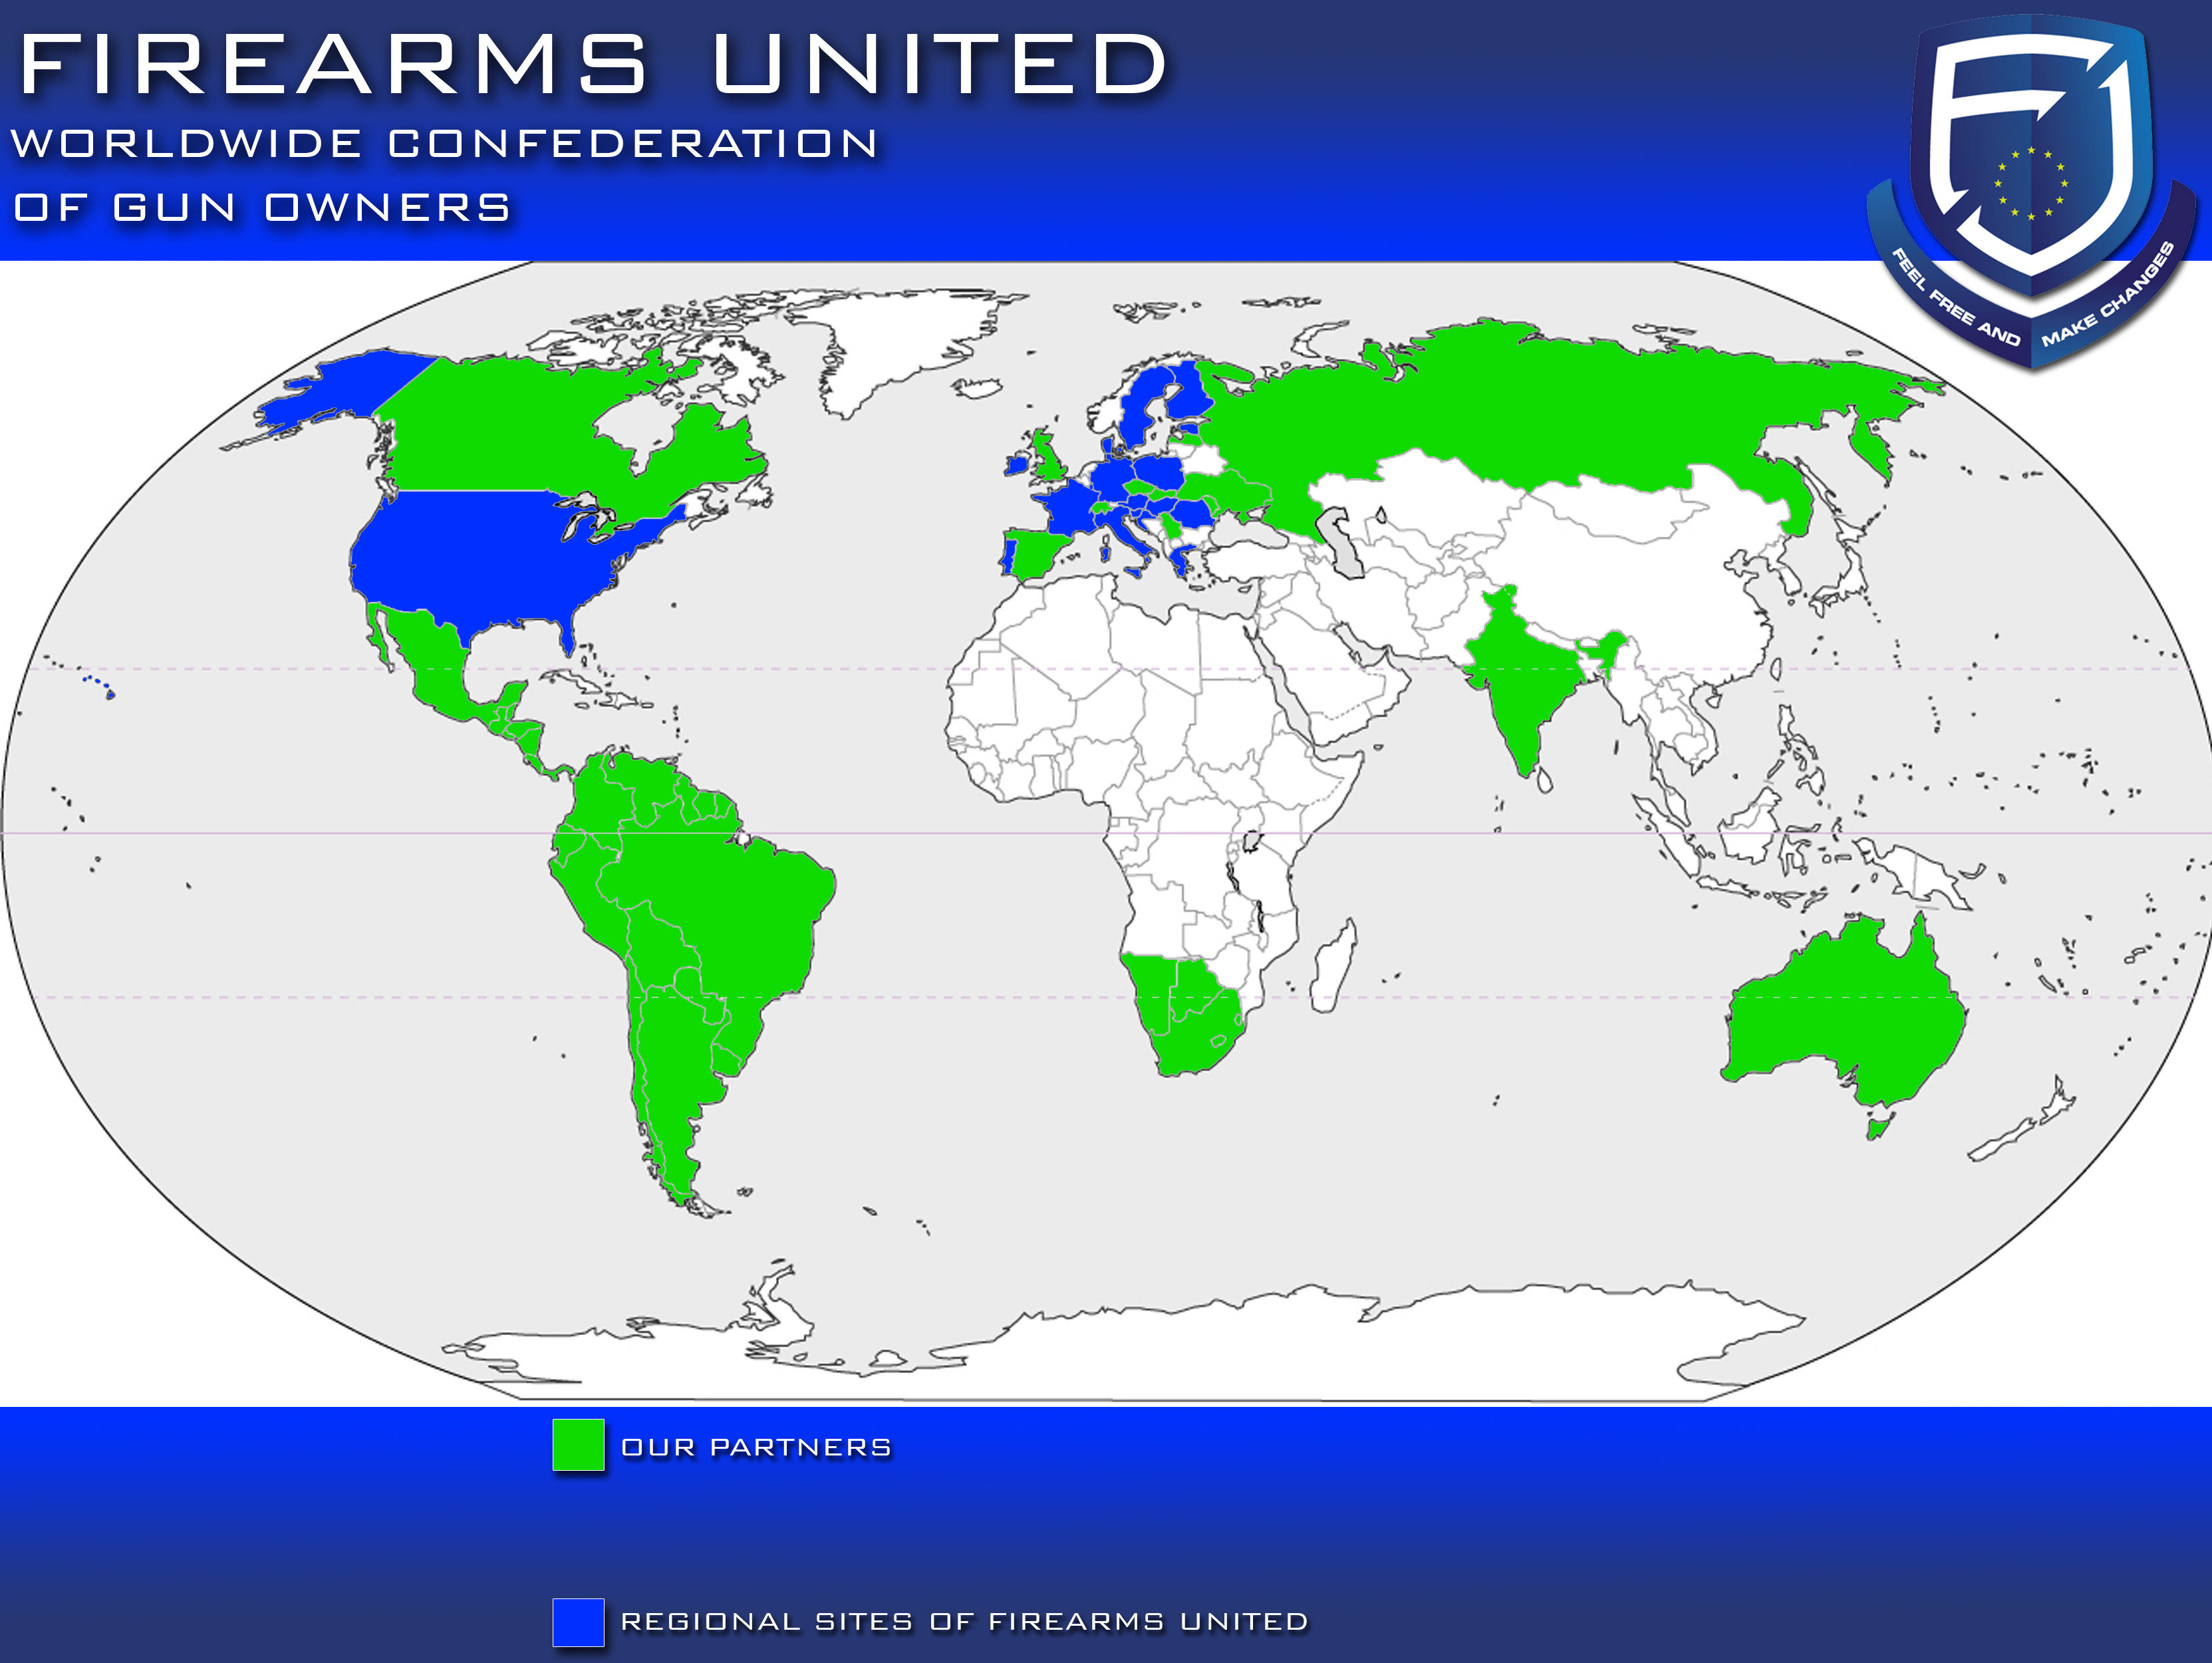 Click On Link Below To See Regional Site Of Firearms United In Your Country